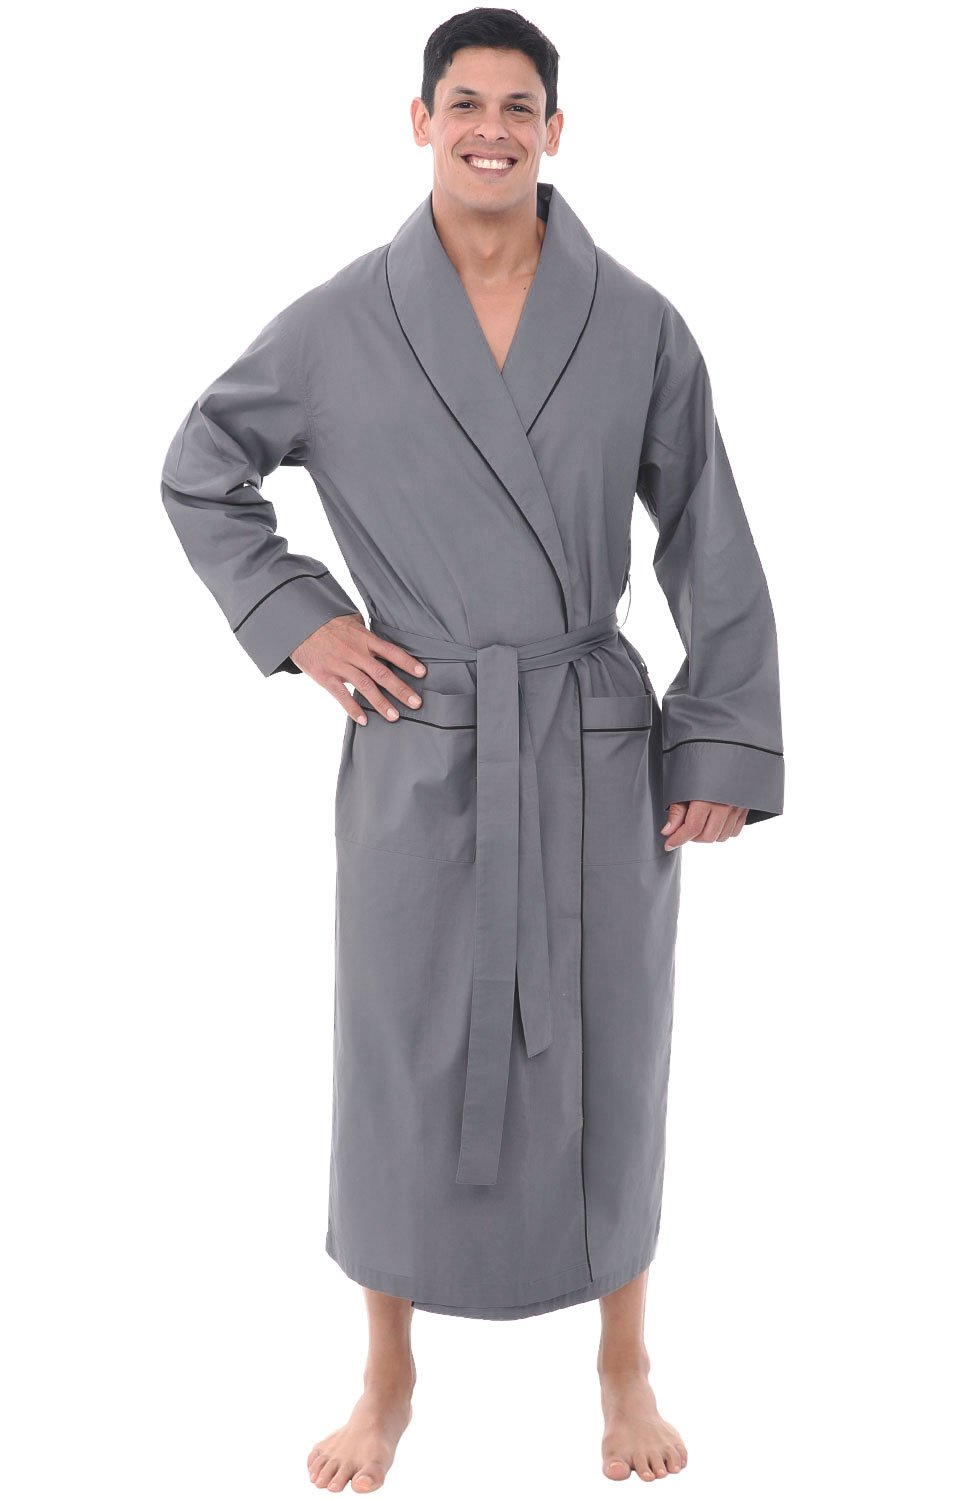 Alexander Del Rossa Mens Cotton Robe, Lightweight Woven Bathrobe, Large Steel Grey (A0715STLLG)